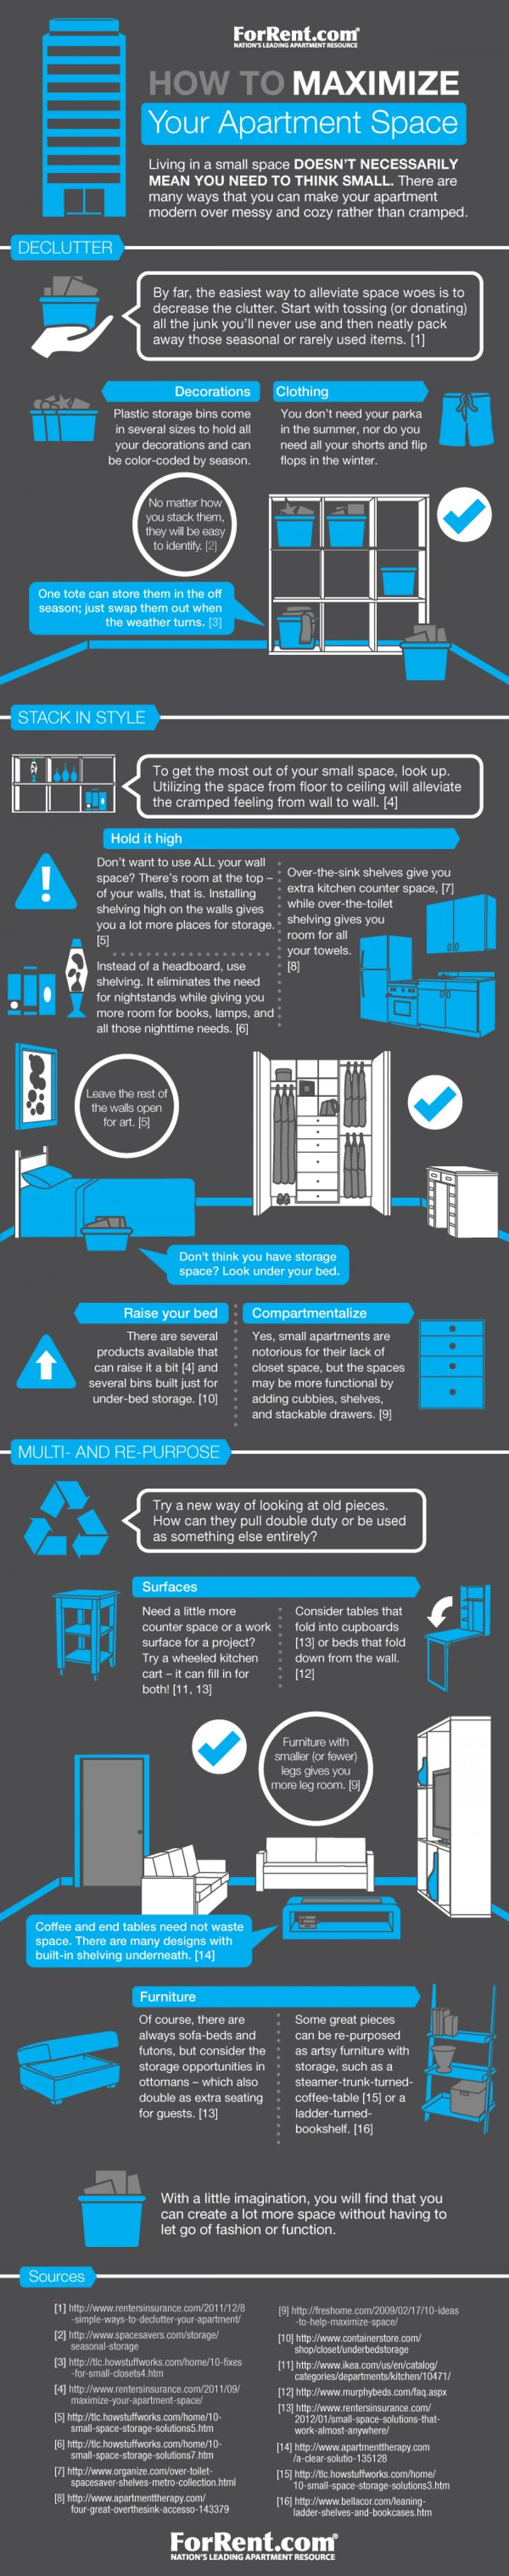 How to maximize your apartment space. Give yourself some room to breathe in your studio apartment. For all of your NYC essentials, visit Duane Reade or go to DuaneReade.com.